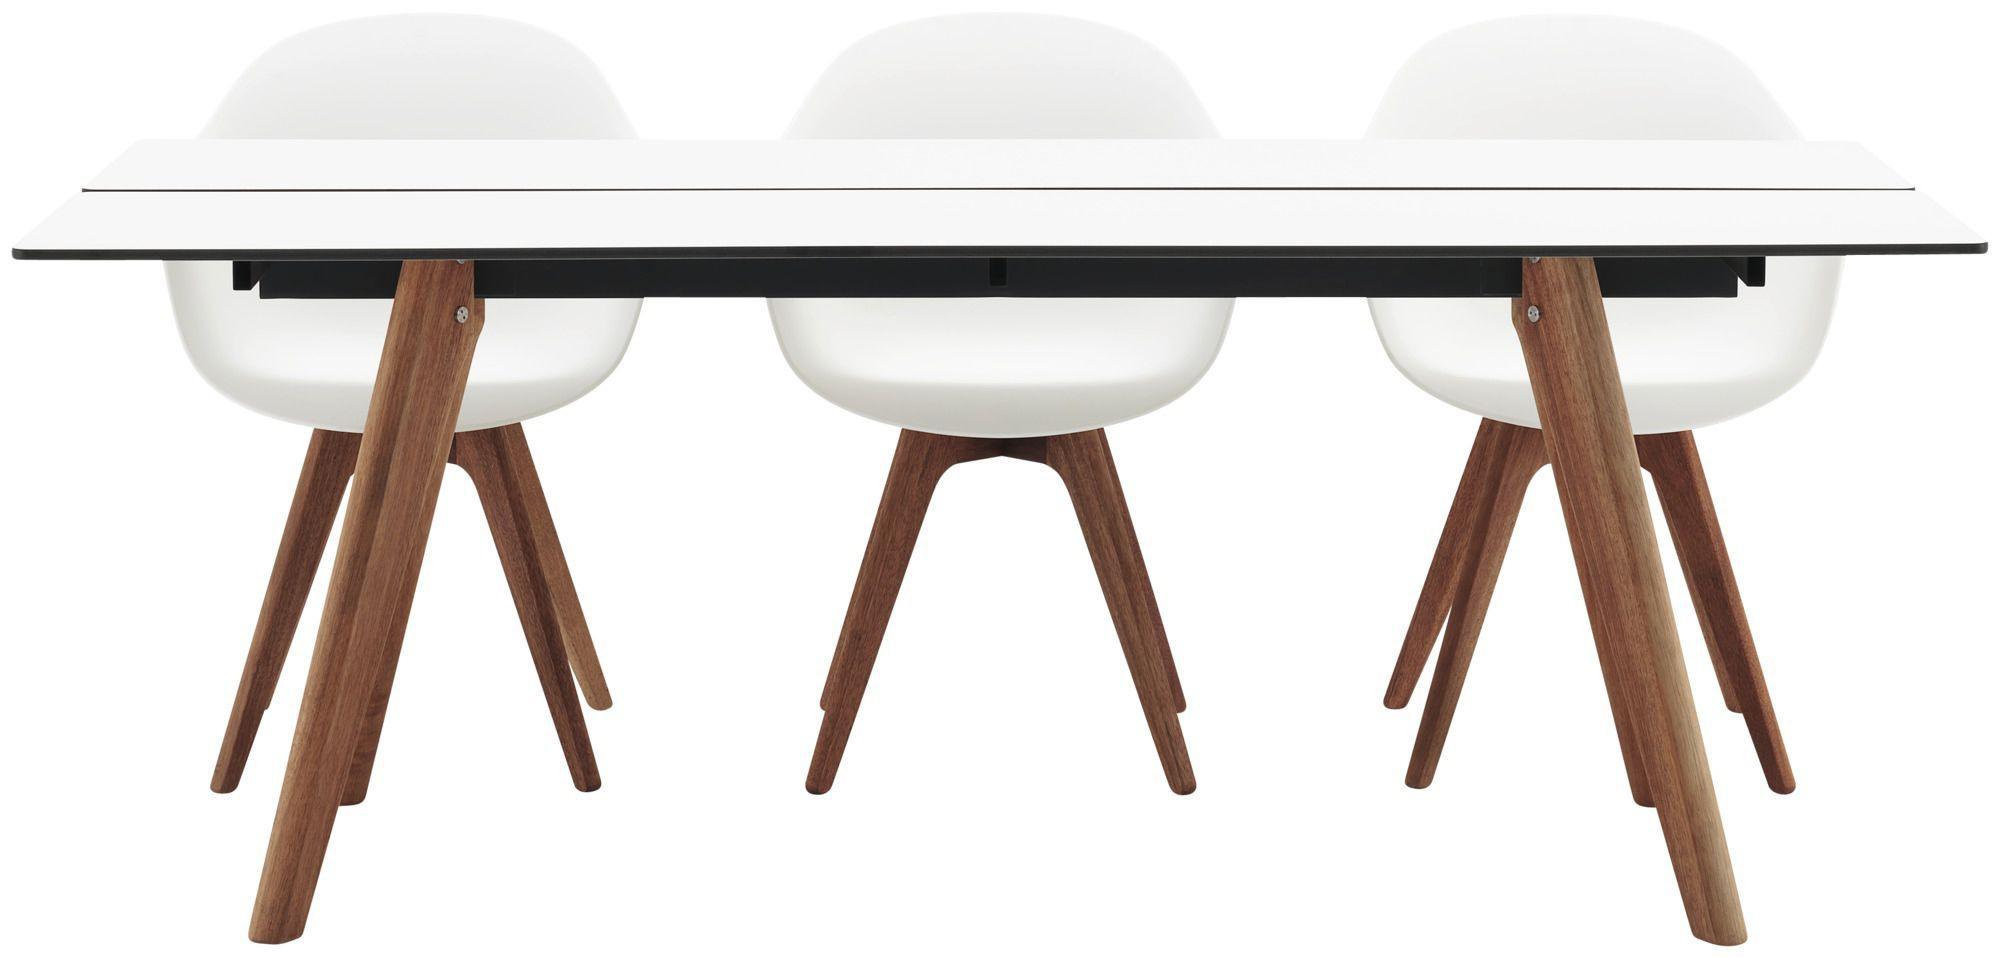 product laminate kitchen table Dining table contemporary wooden laminate ADELAIDE BoConcept